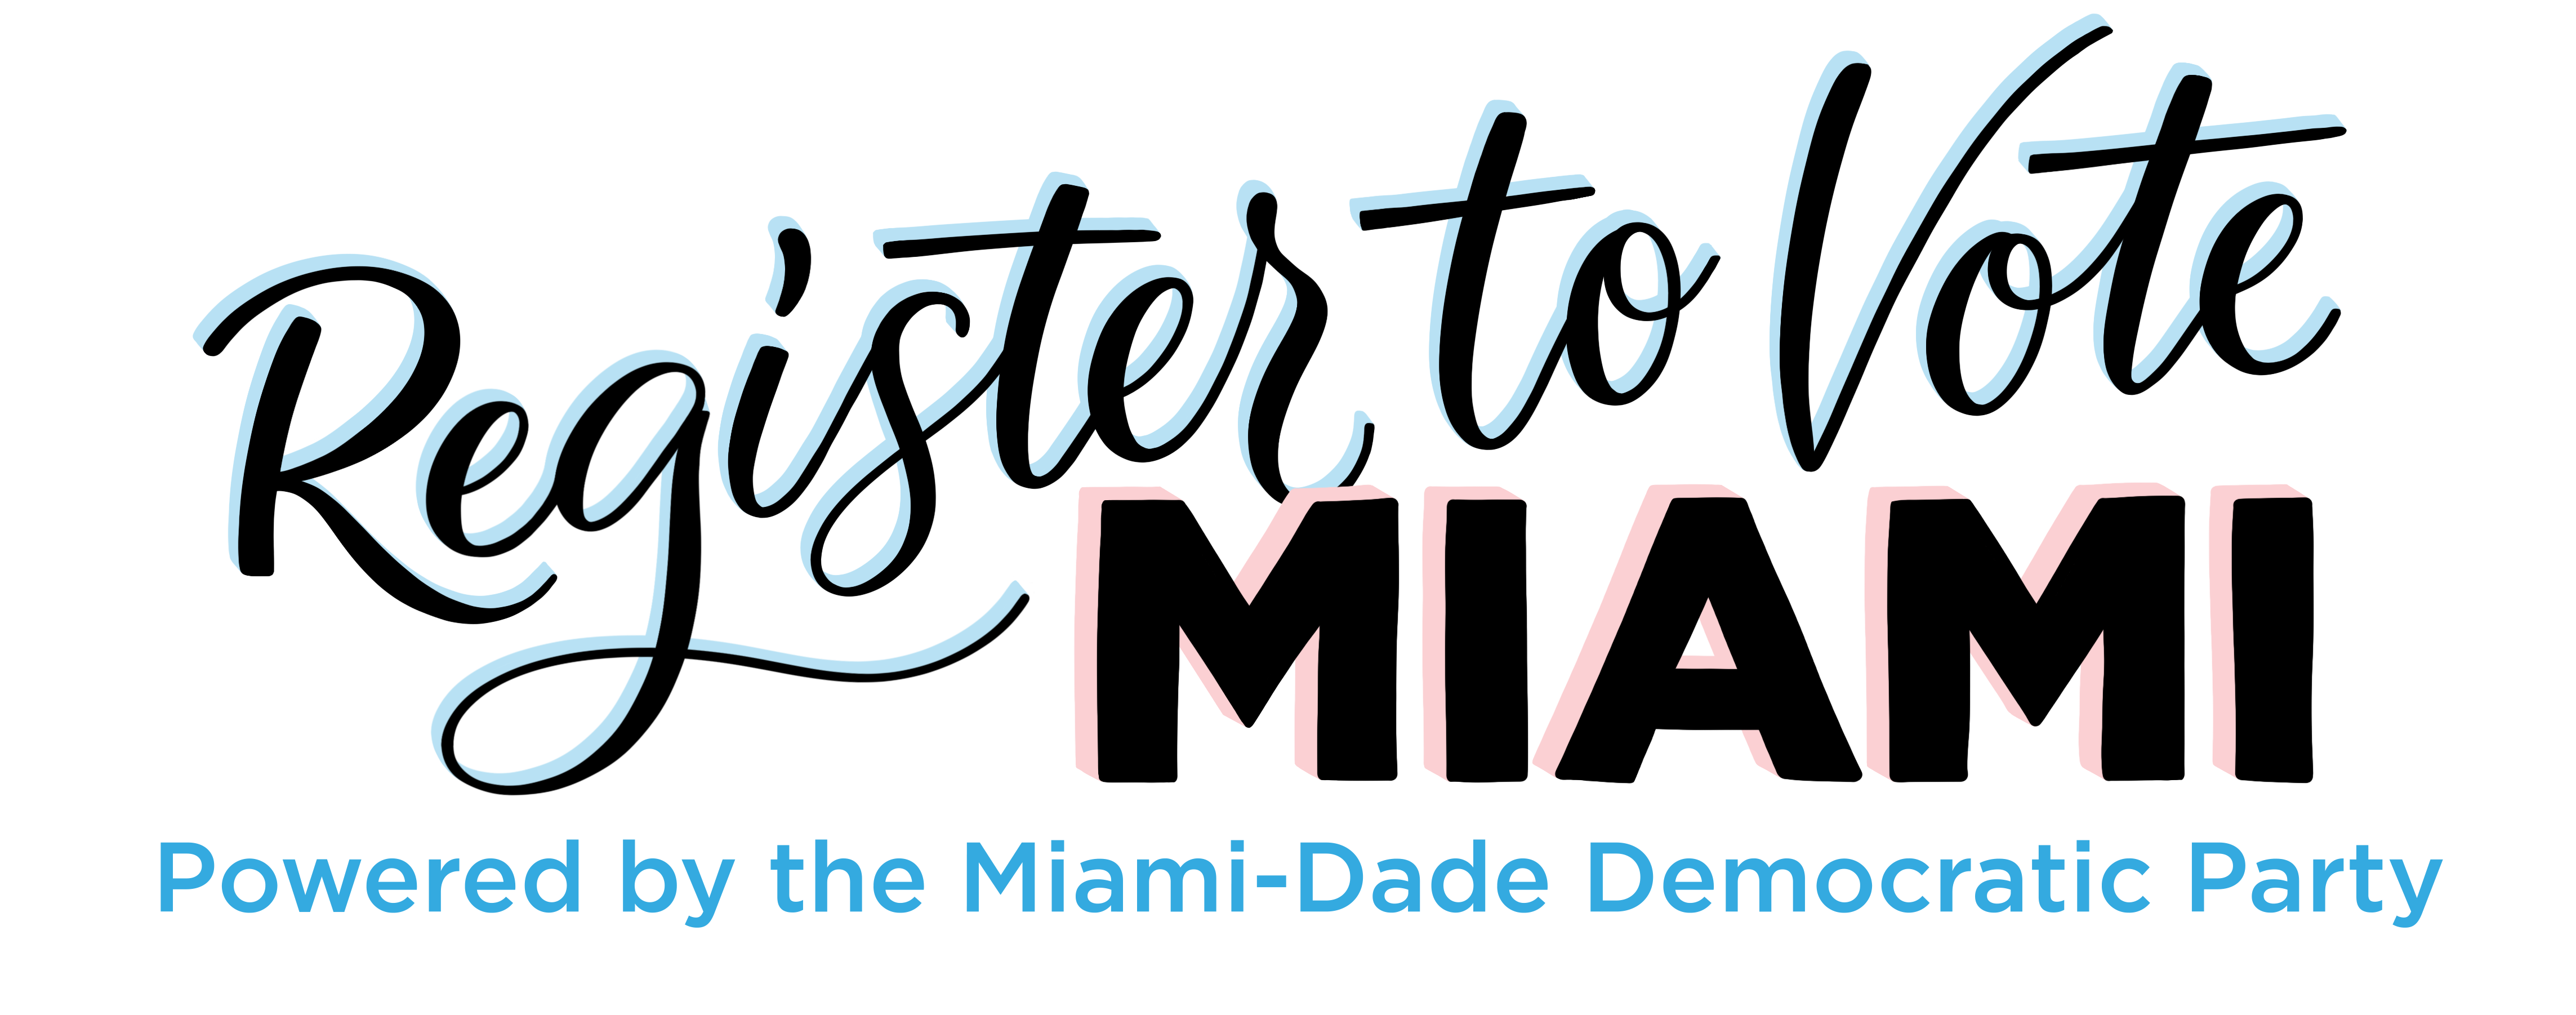 Register To Vote Miami